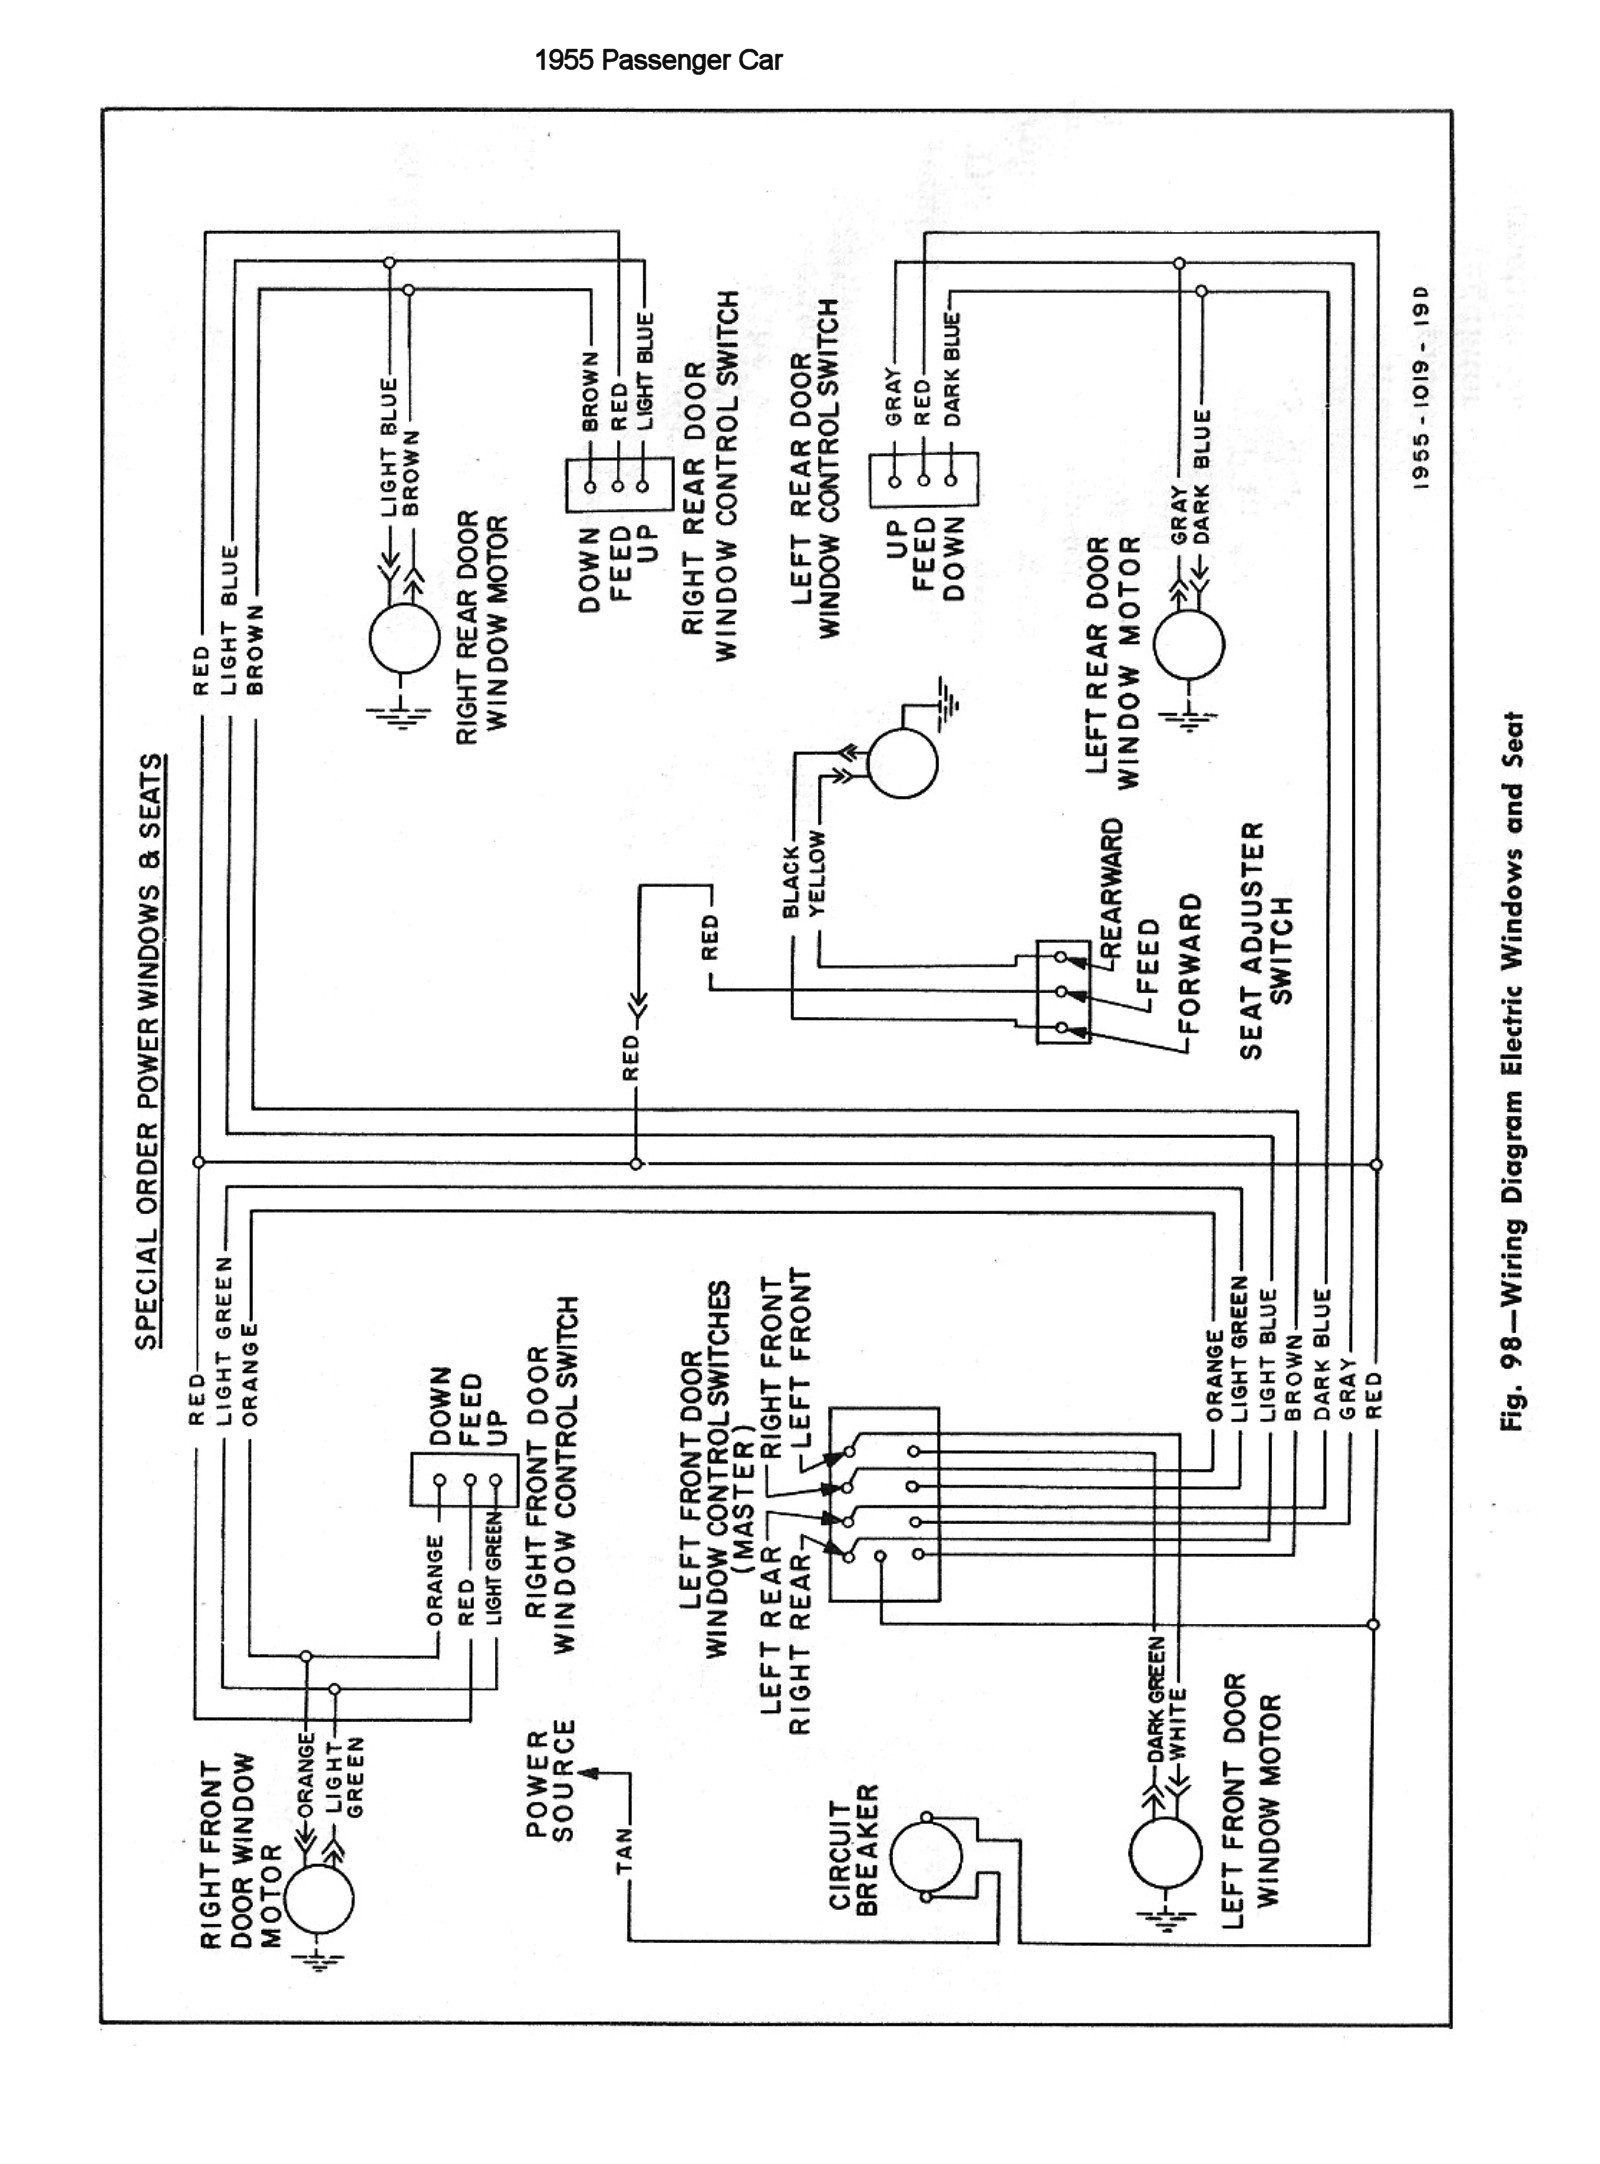 1955 chevy turn signal wiring diagram wiringdiagram org1955 chevy turn signal wiring diagram wiringdiagram org [ 1600 x 2164 Pixel ]